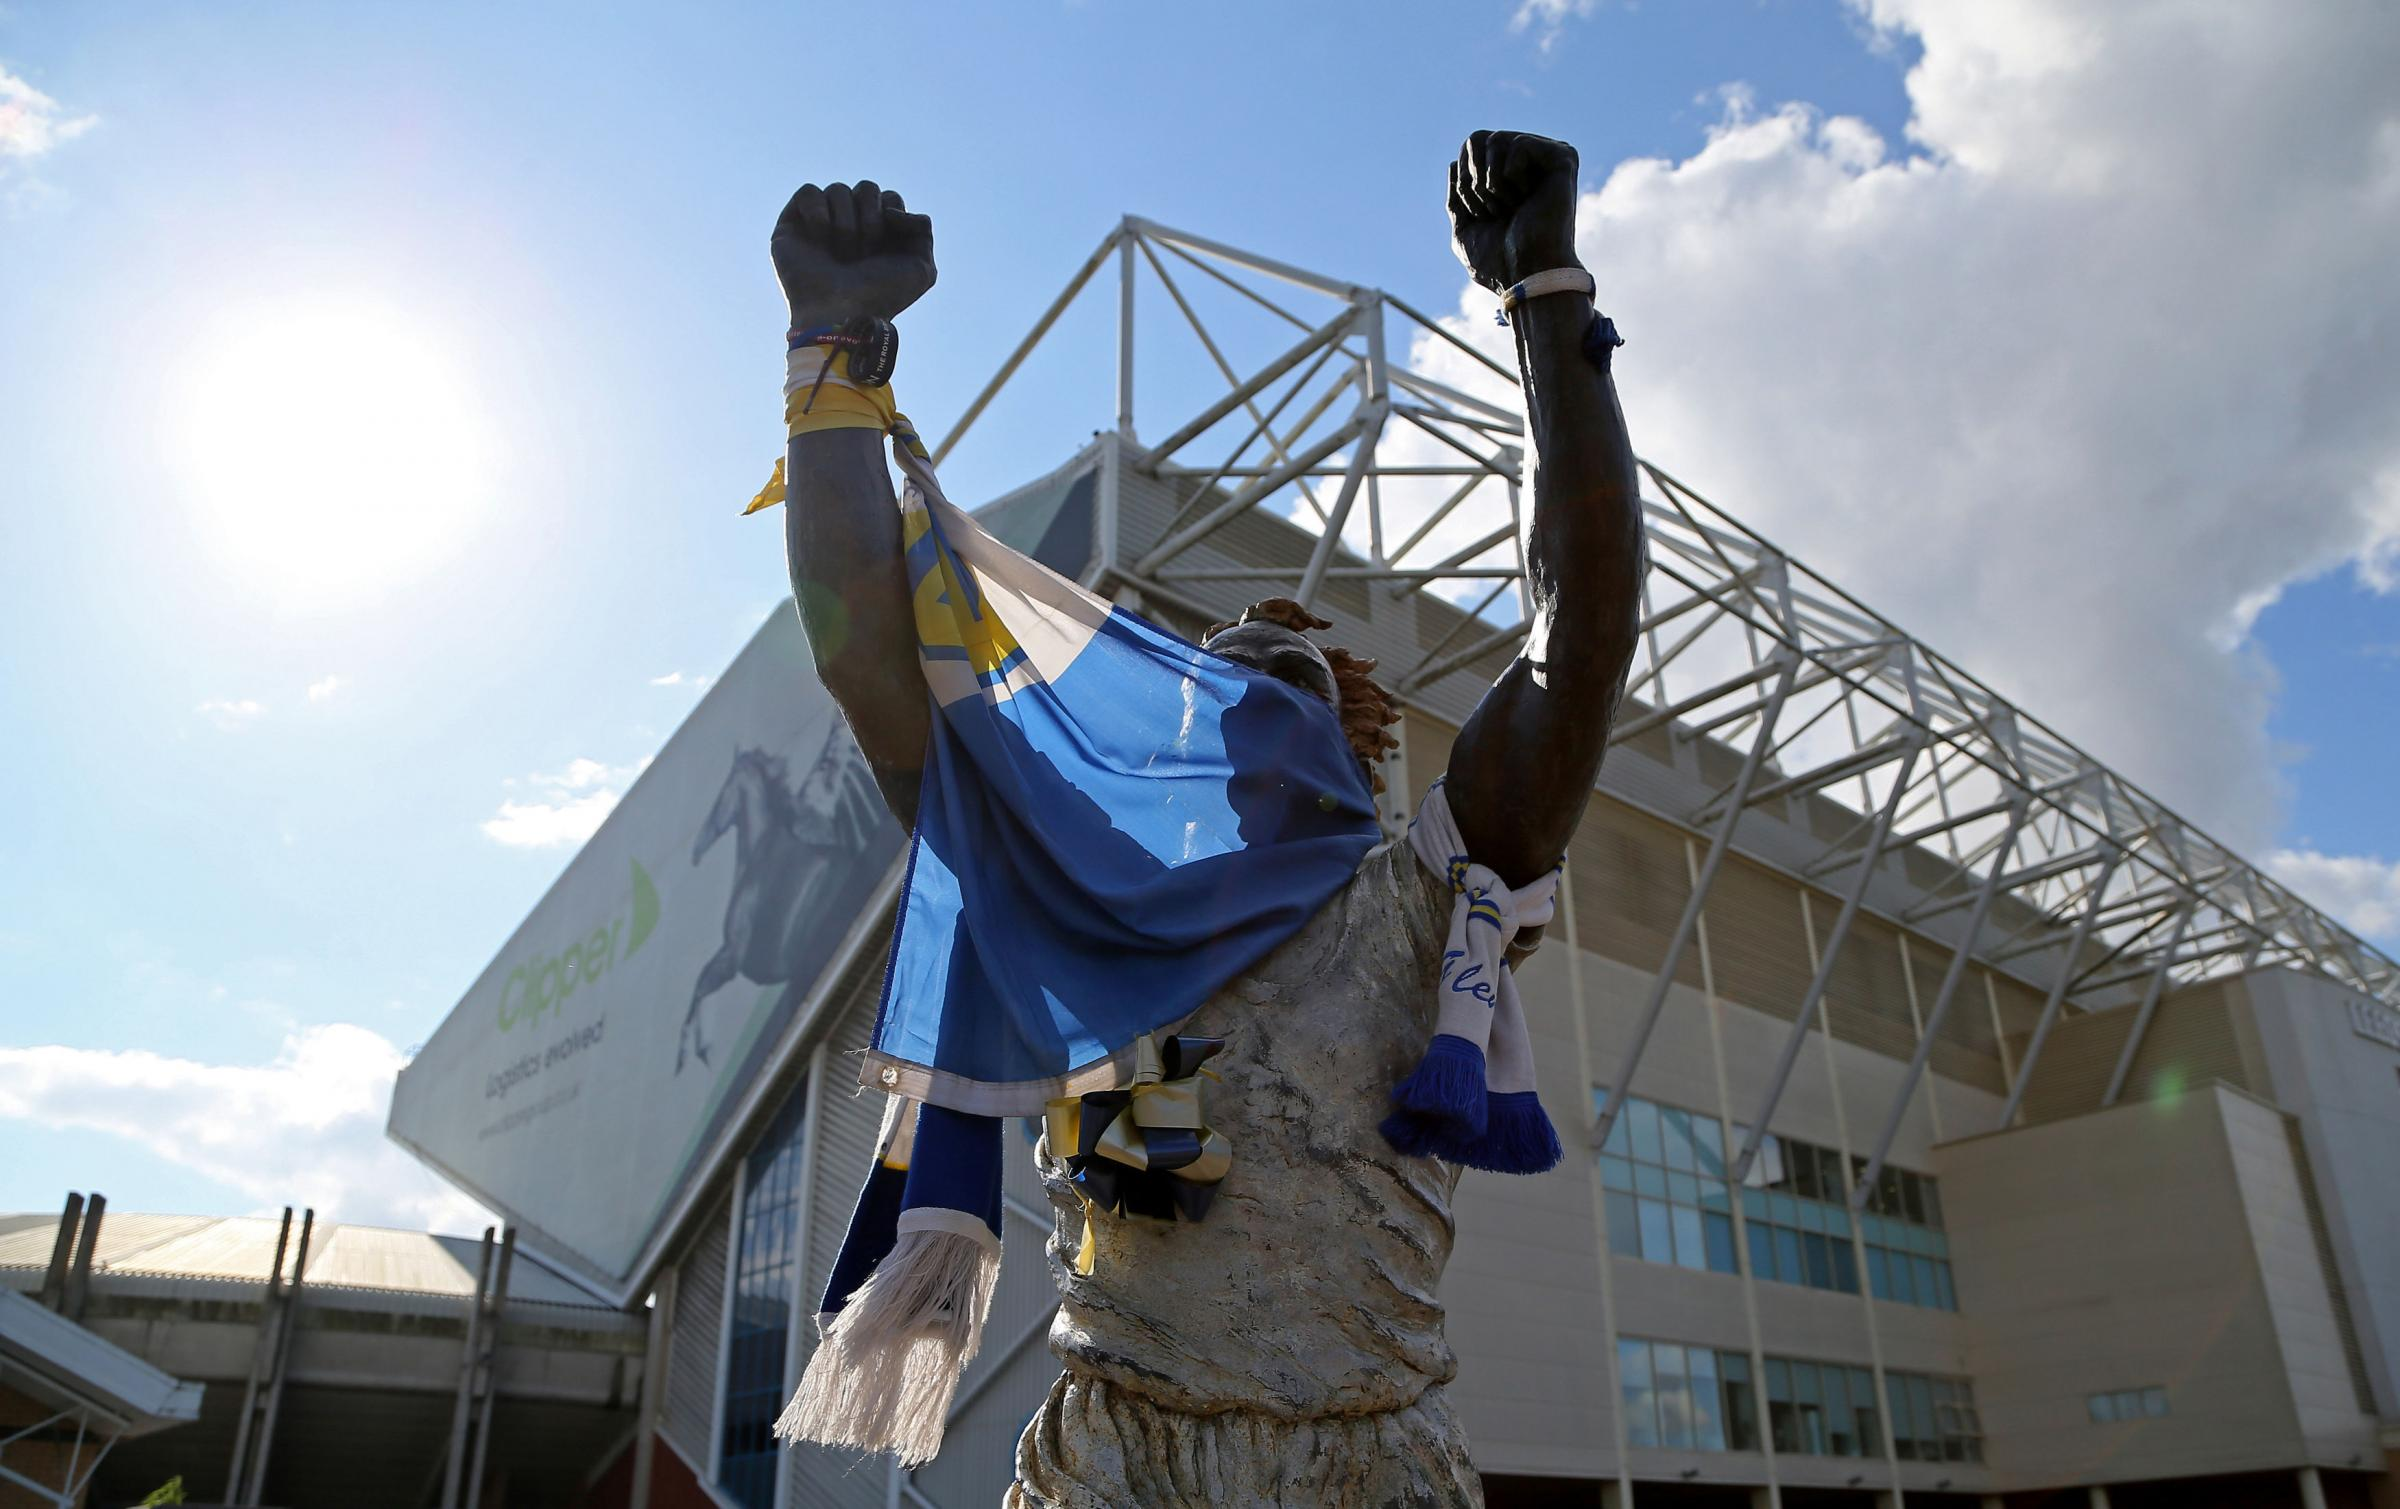 The Billy Bremner statue outside Elland Road before the Carabao Cup, First Round match between Leeds United and Port Vale. PRESS ASSOCIATION Photo. Picture date: Wednesday August 9, 2017. See PA story SOCCER Leeds. Photo credit should read: Richard Seller